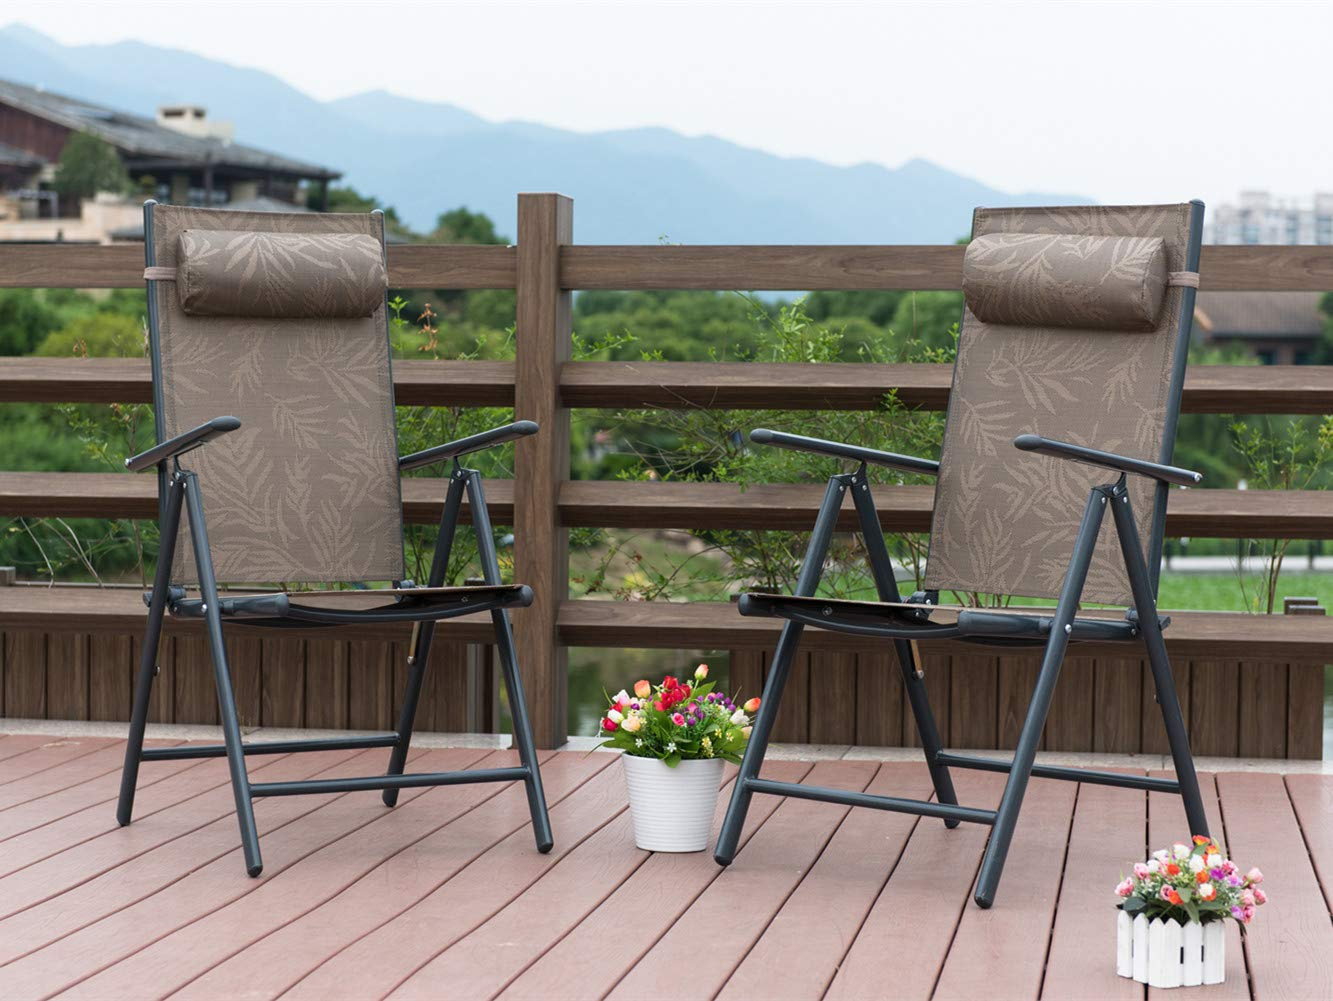 PatioPost Outdoor Adjustable Folding Recliner Aluminum Patio Sling Chairs with 7 Stalls, Set of 2 - Jacquard by PatioPost (Image #2)